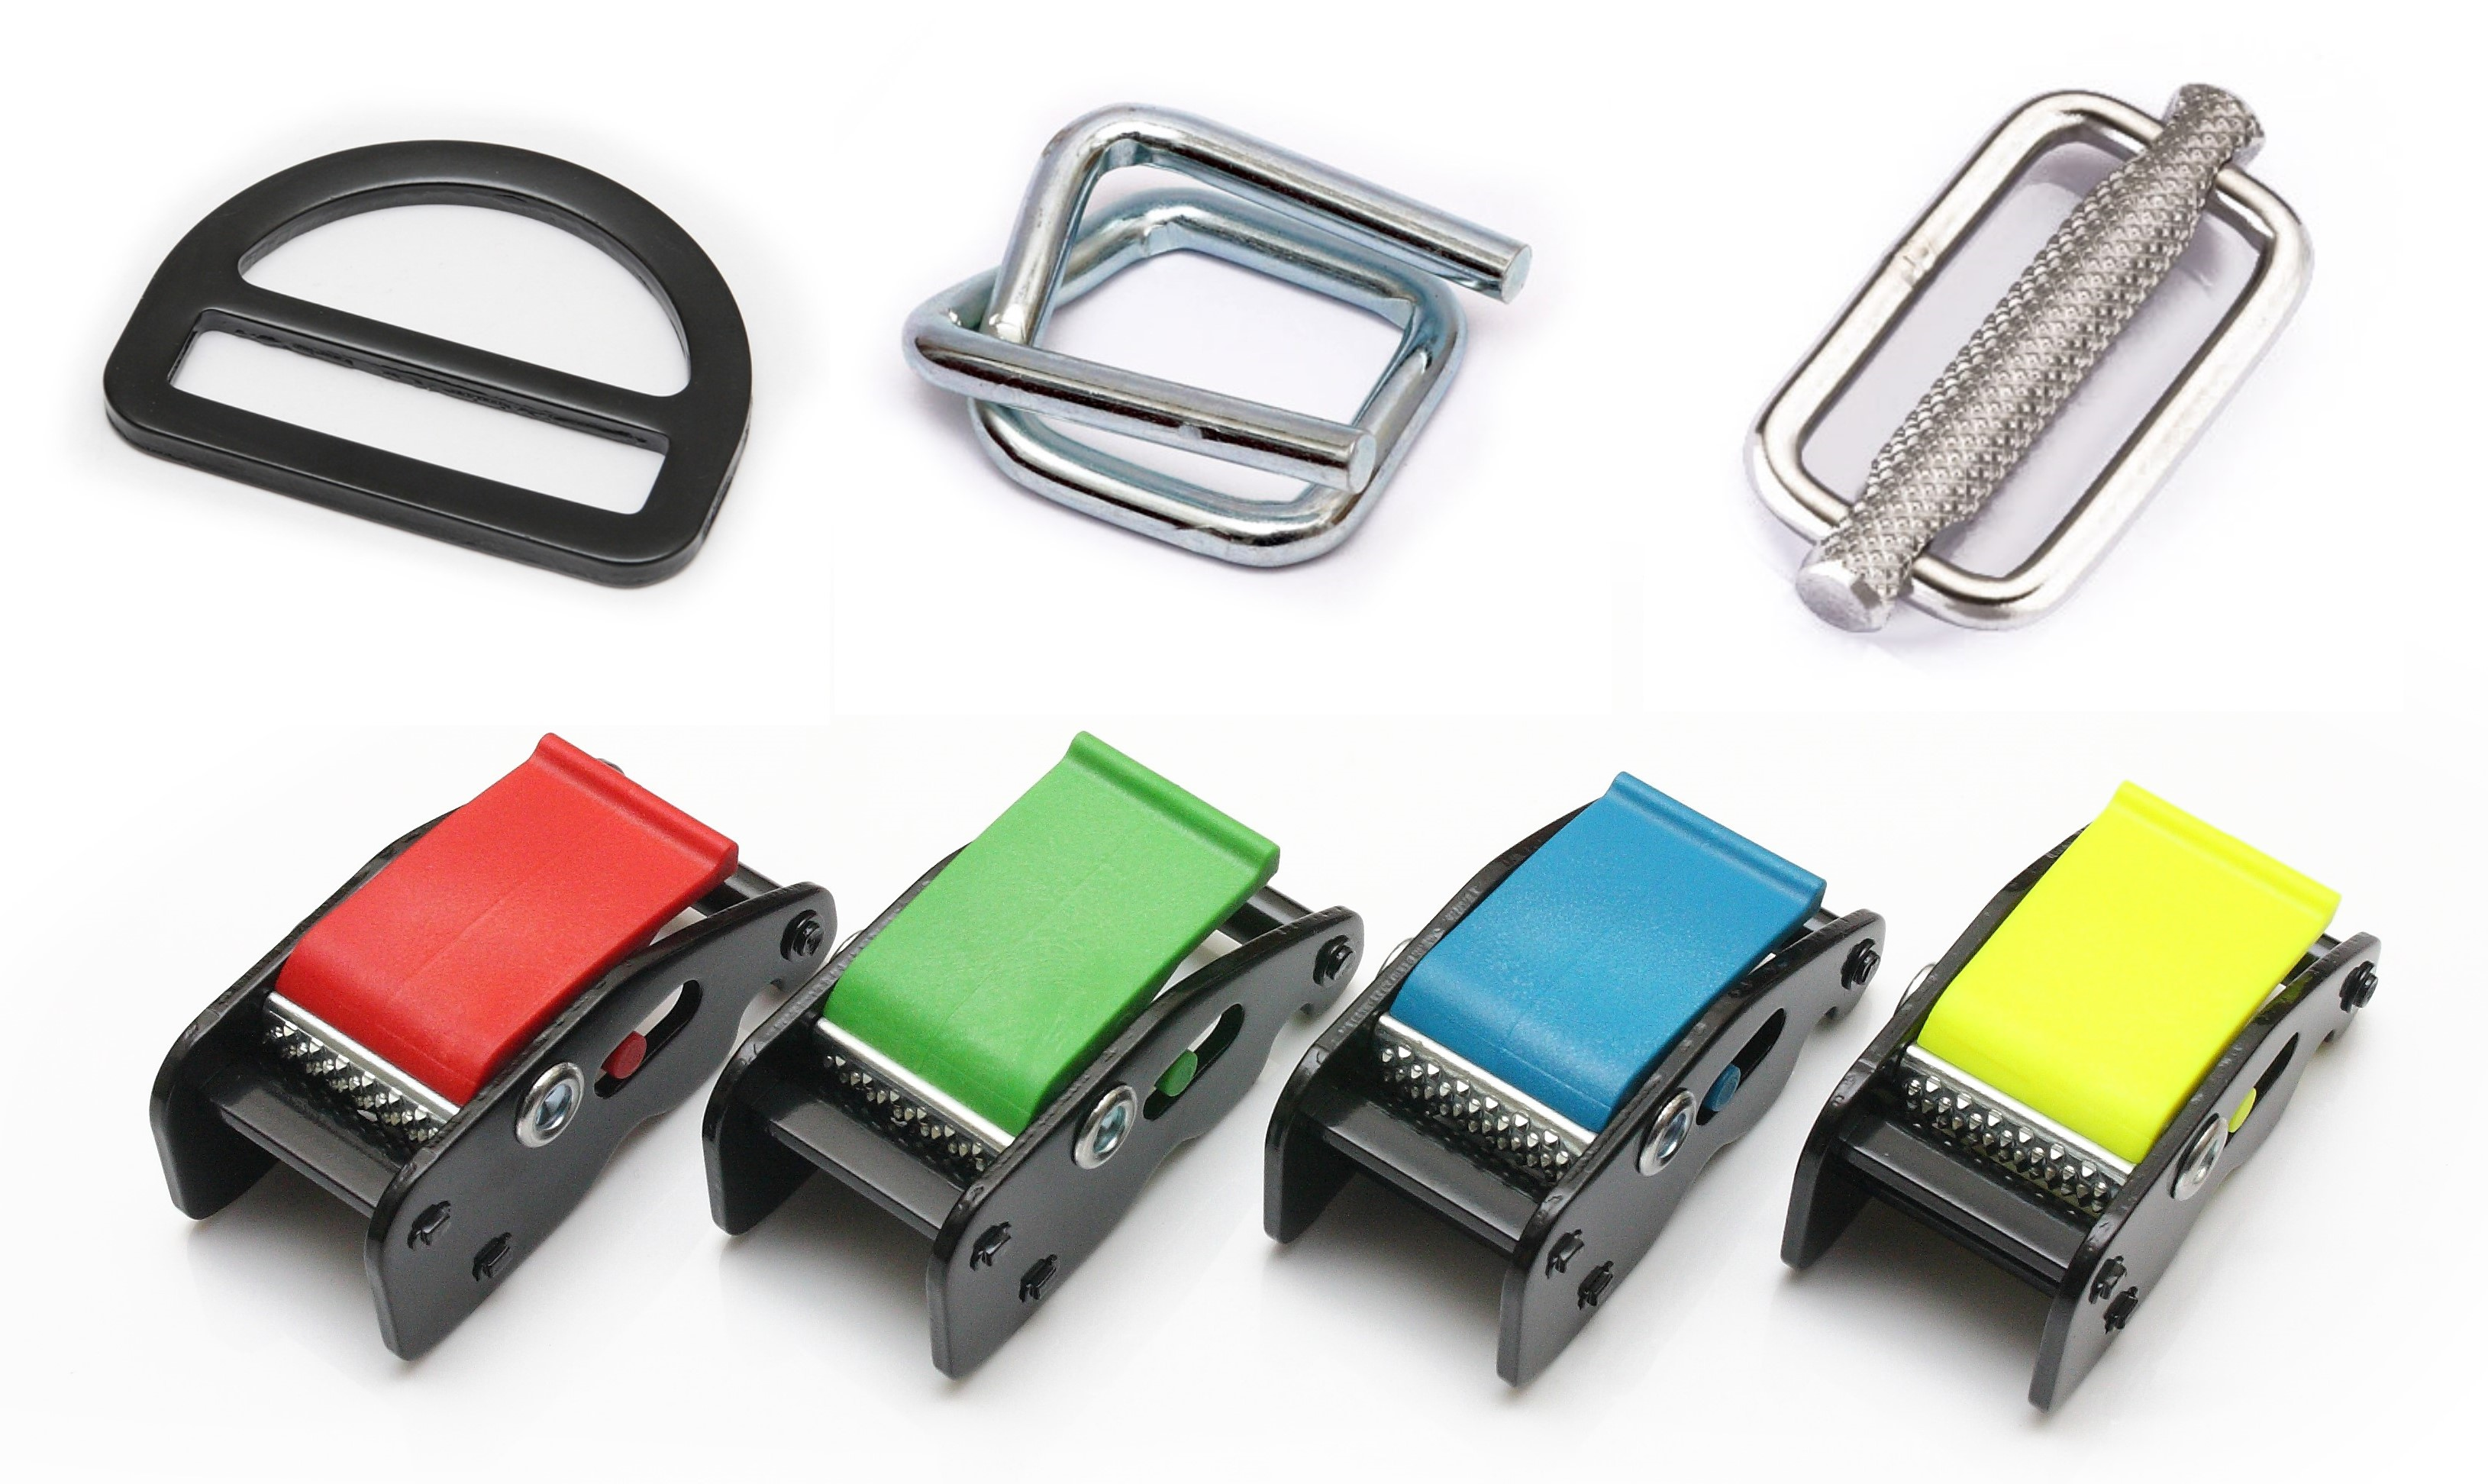 4x4 Pick Up Buckle for Auto Exterior Accessories made by Win Chance Metal Co., LTD. 鈞成金屬股份有限公司 - MatchSupplier.com